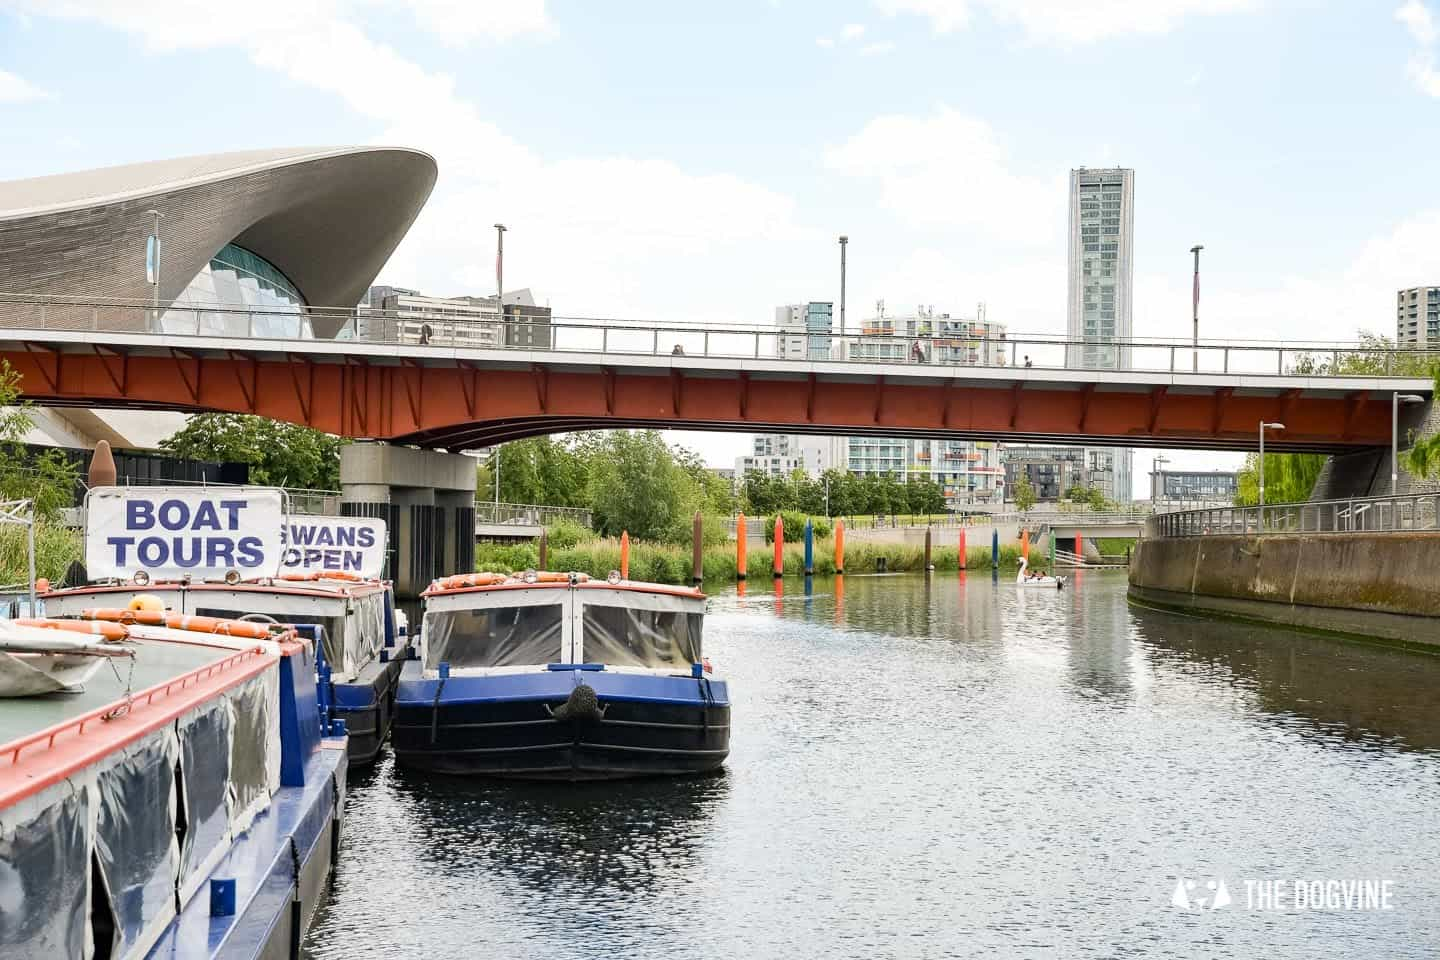 Queen Elizabeth Olympic Park Dog-friendly Boat Tours London - Lee and Stort 1